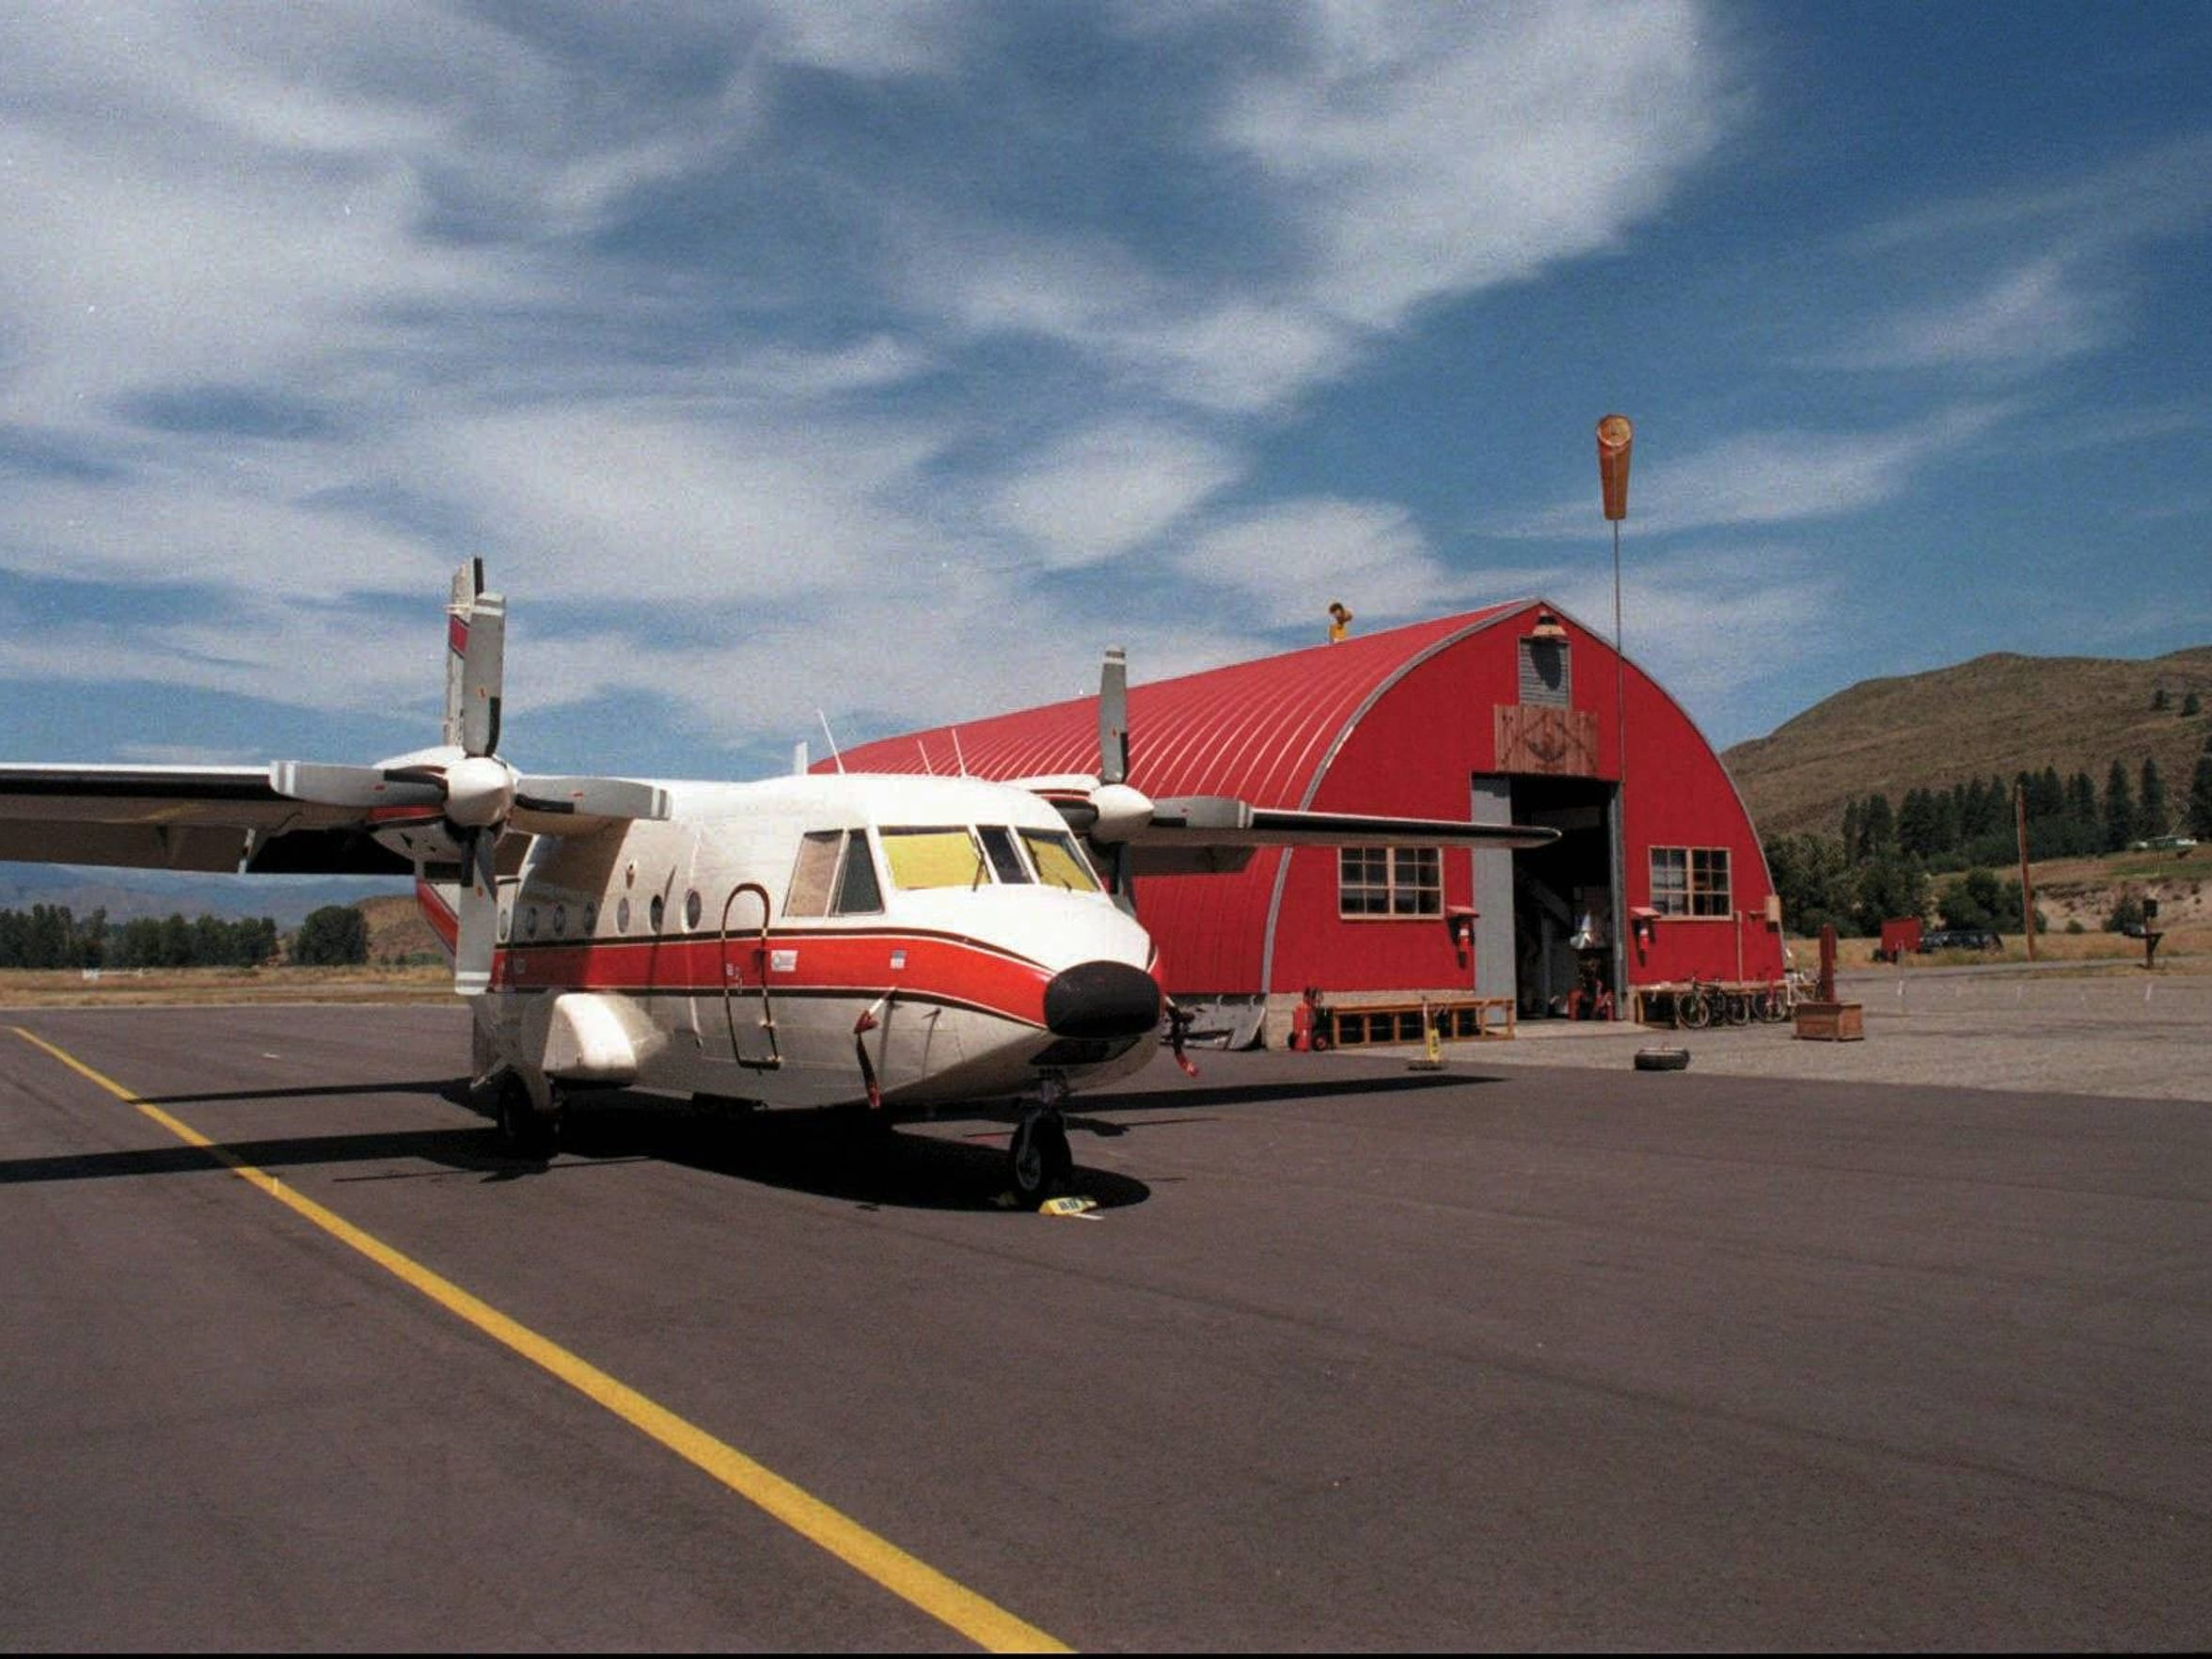 At the North Cascades, Wash.  Smokejumper Base a plane